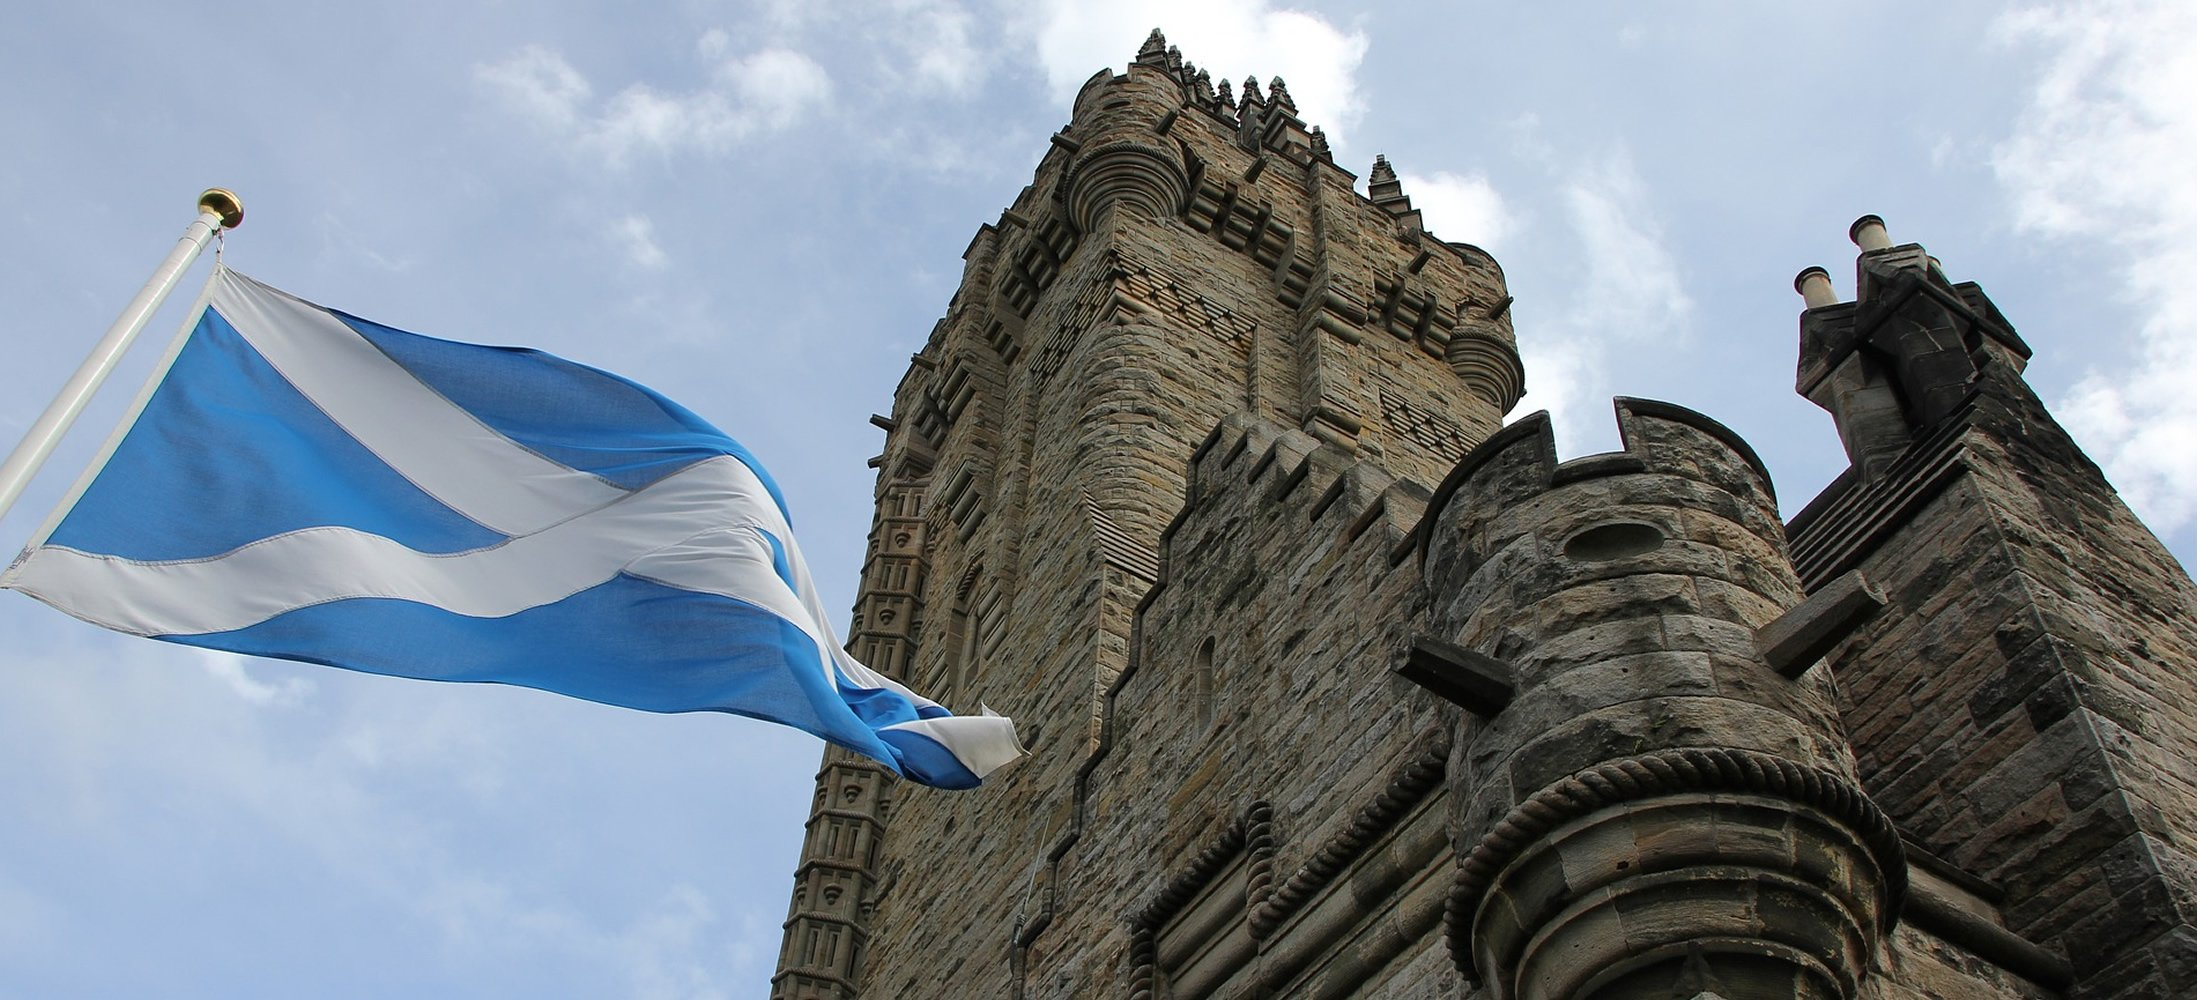 Wallace Monument view with Saltire flag